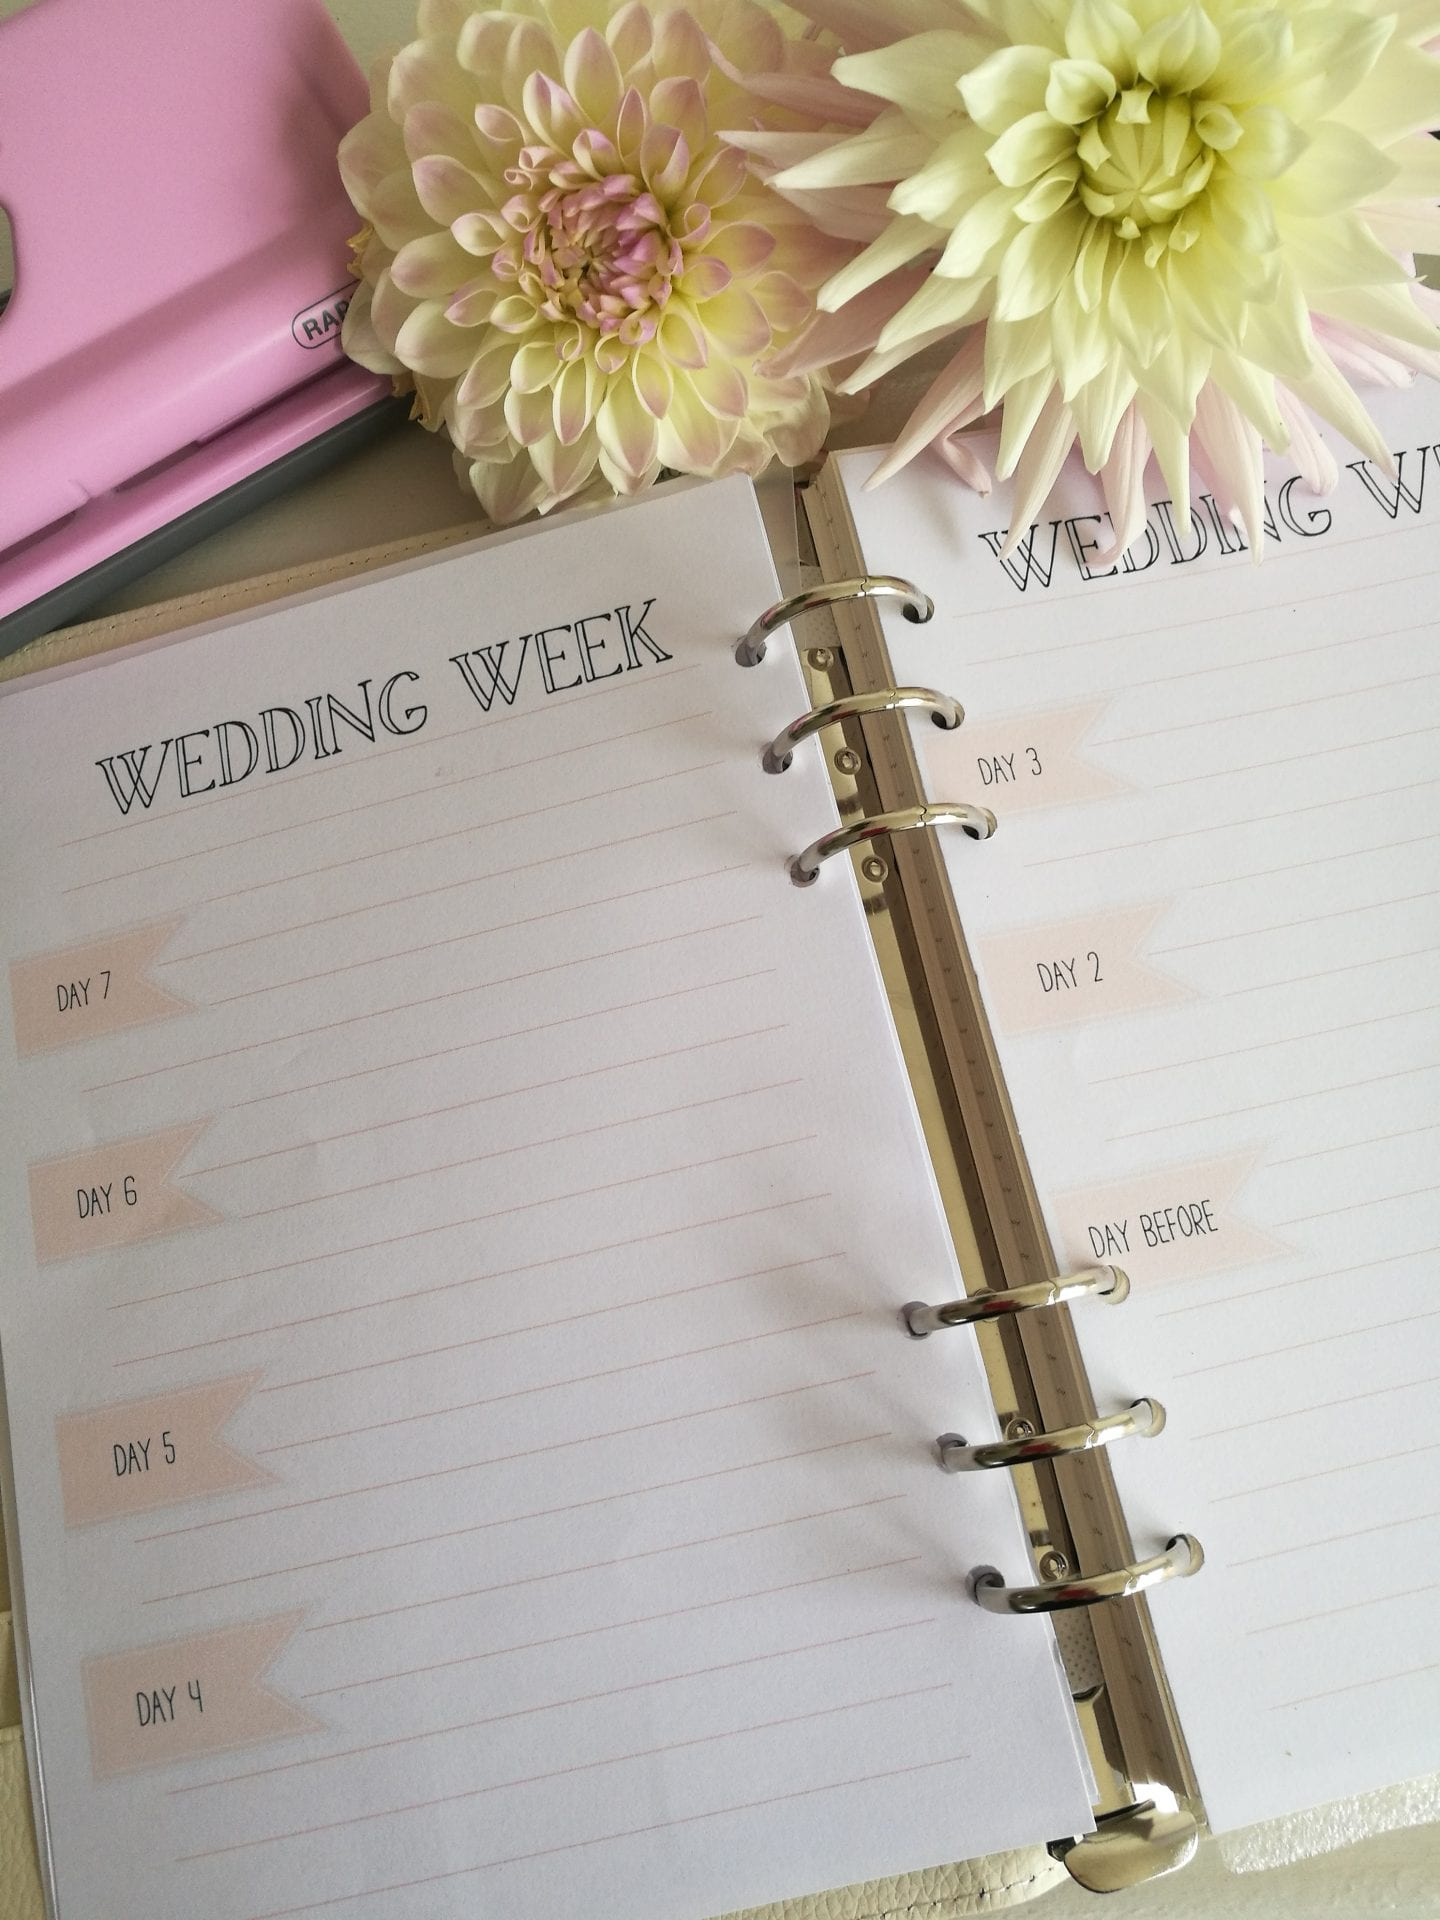 Wedding printable planner